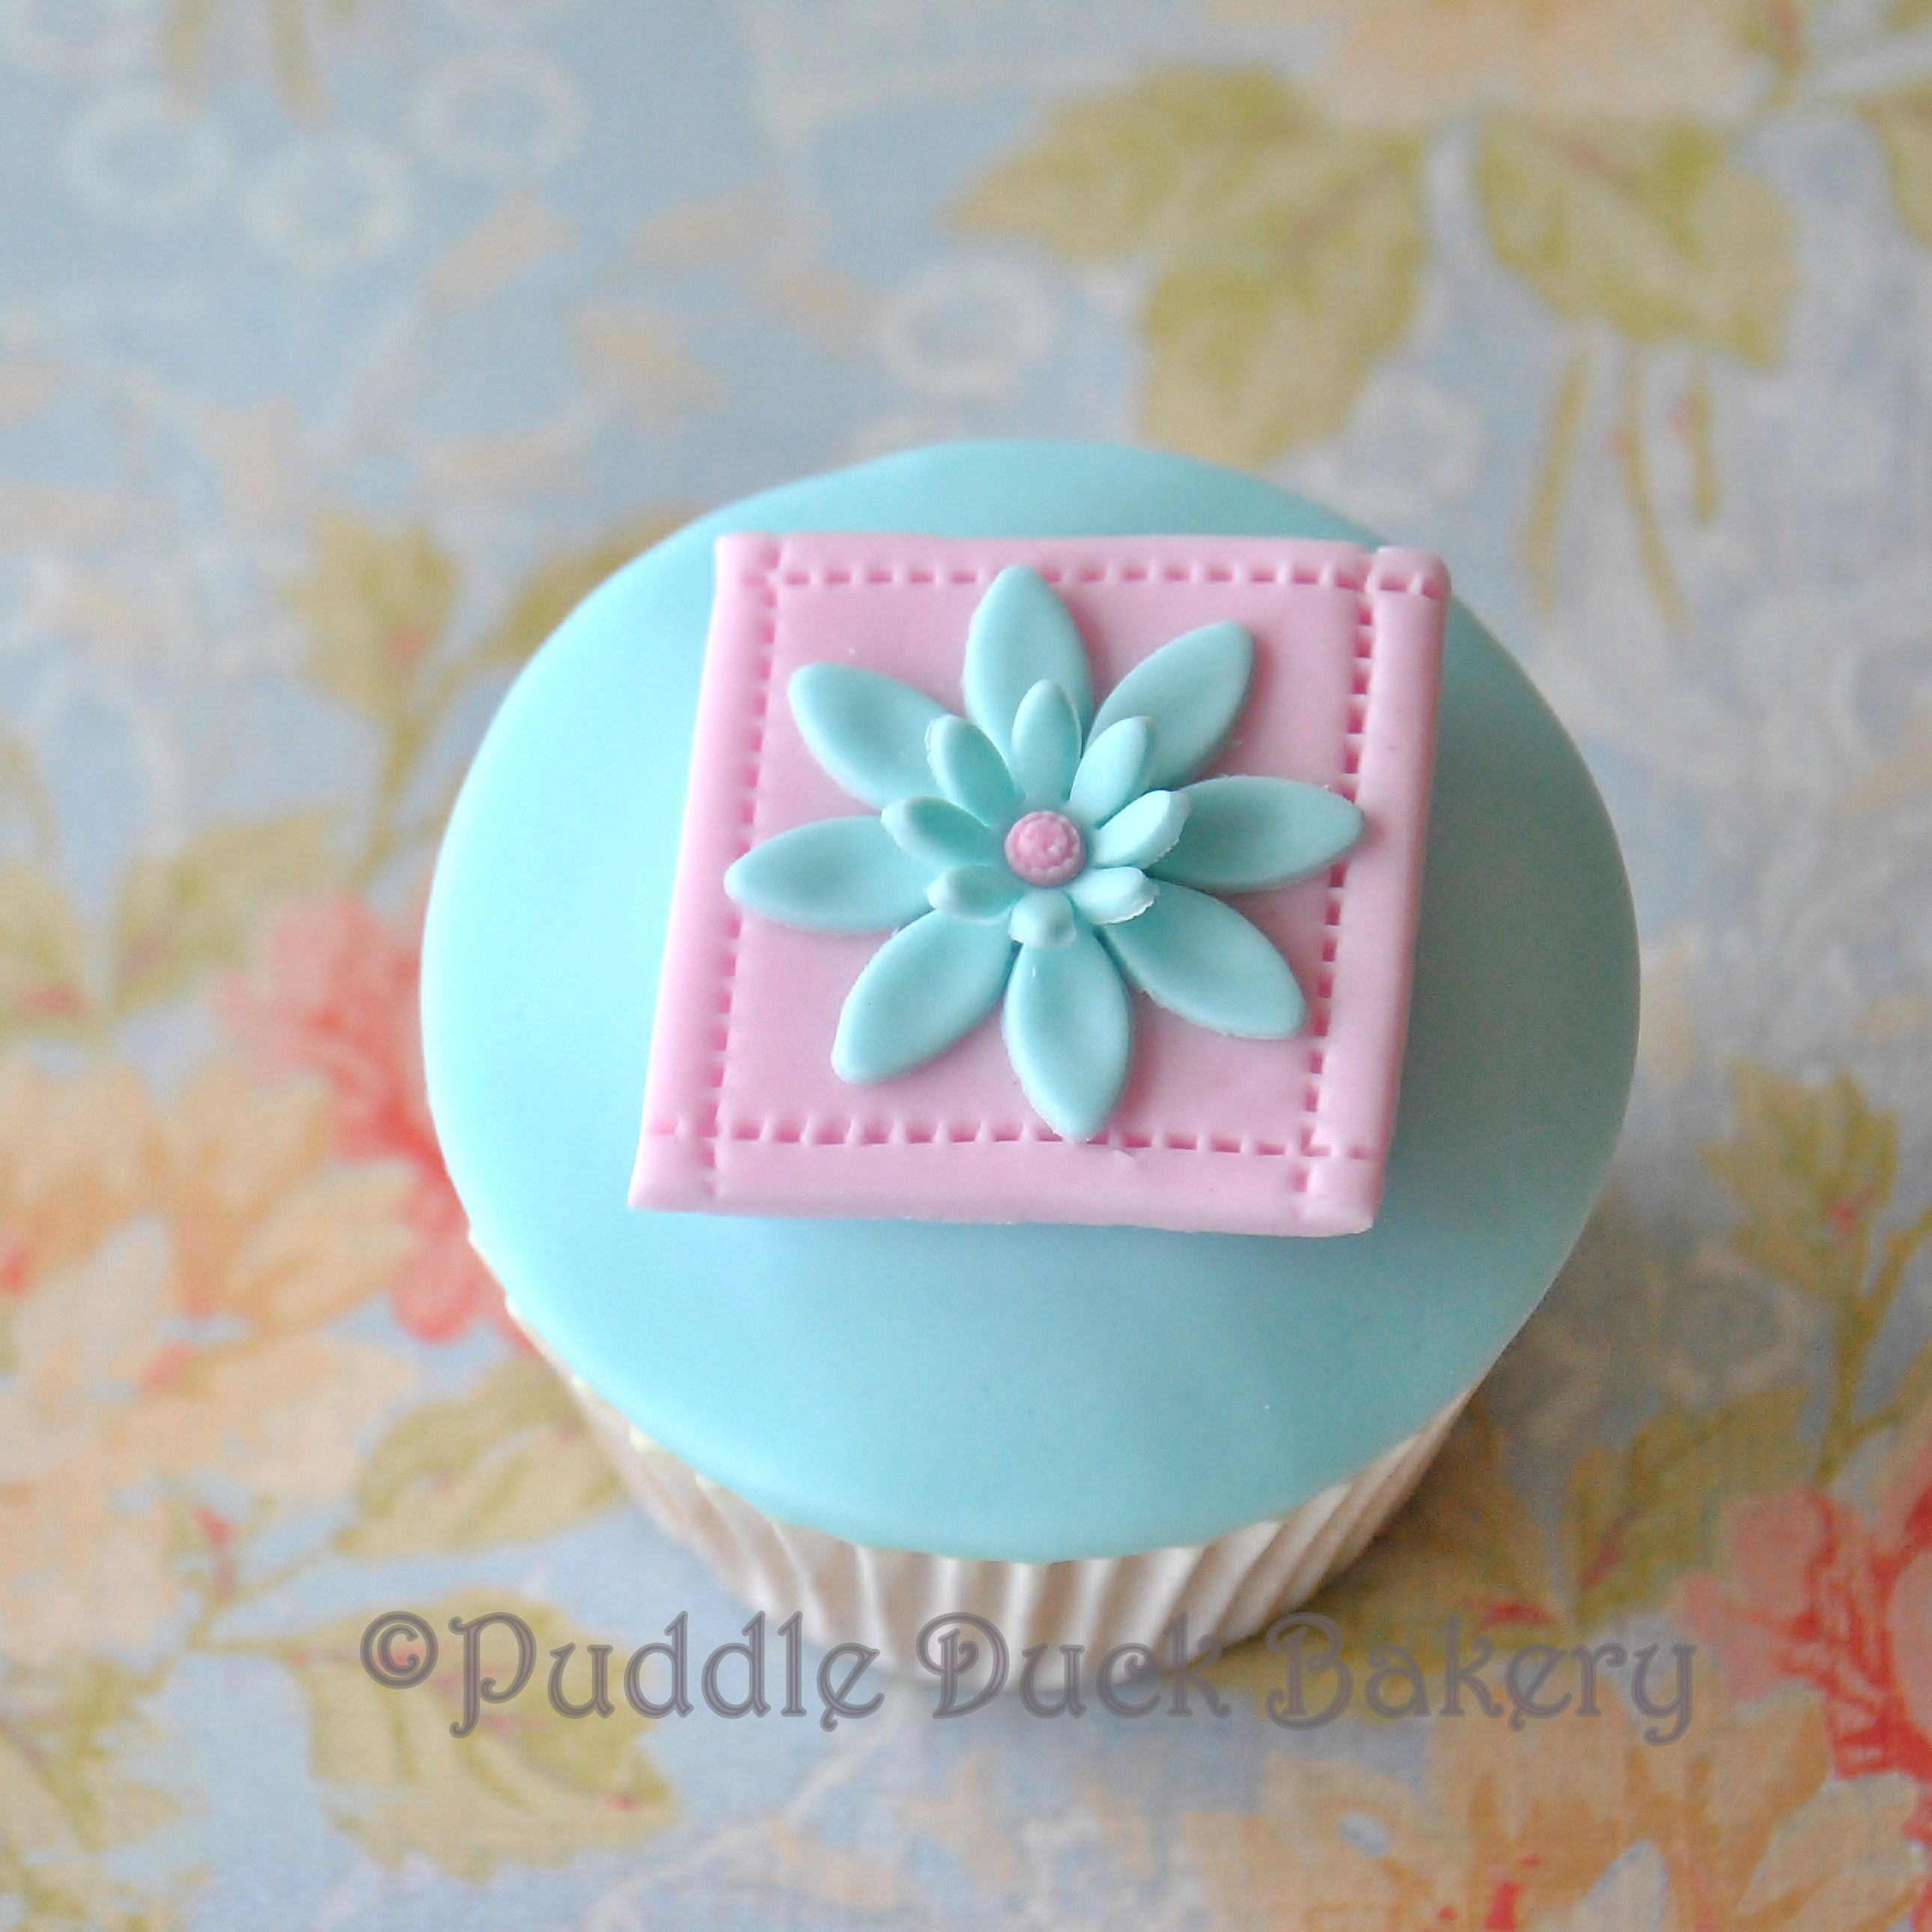 An elegant flower on a cupcake